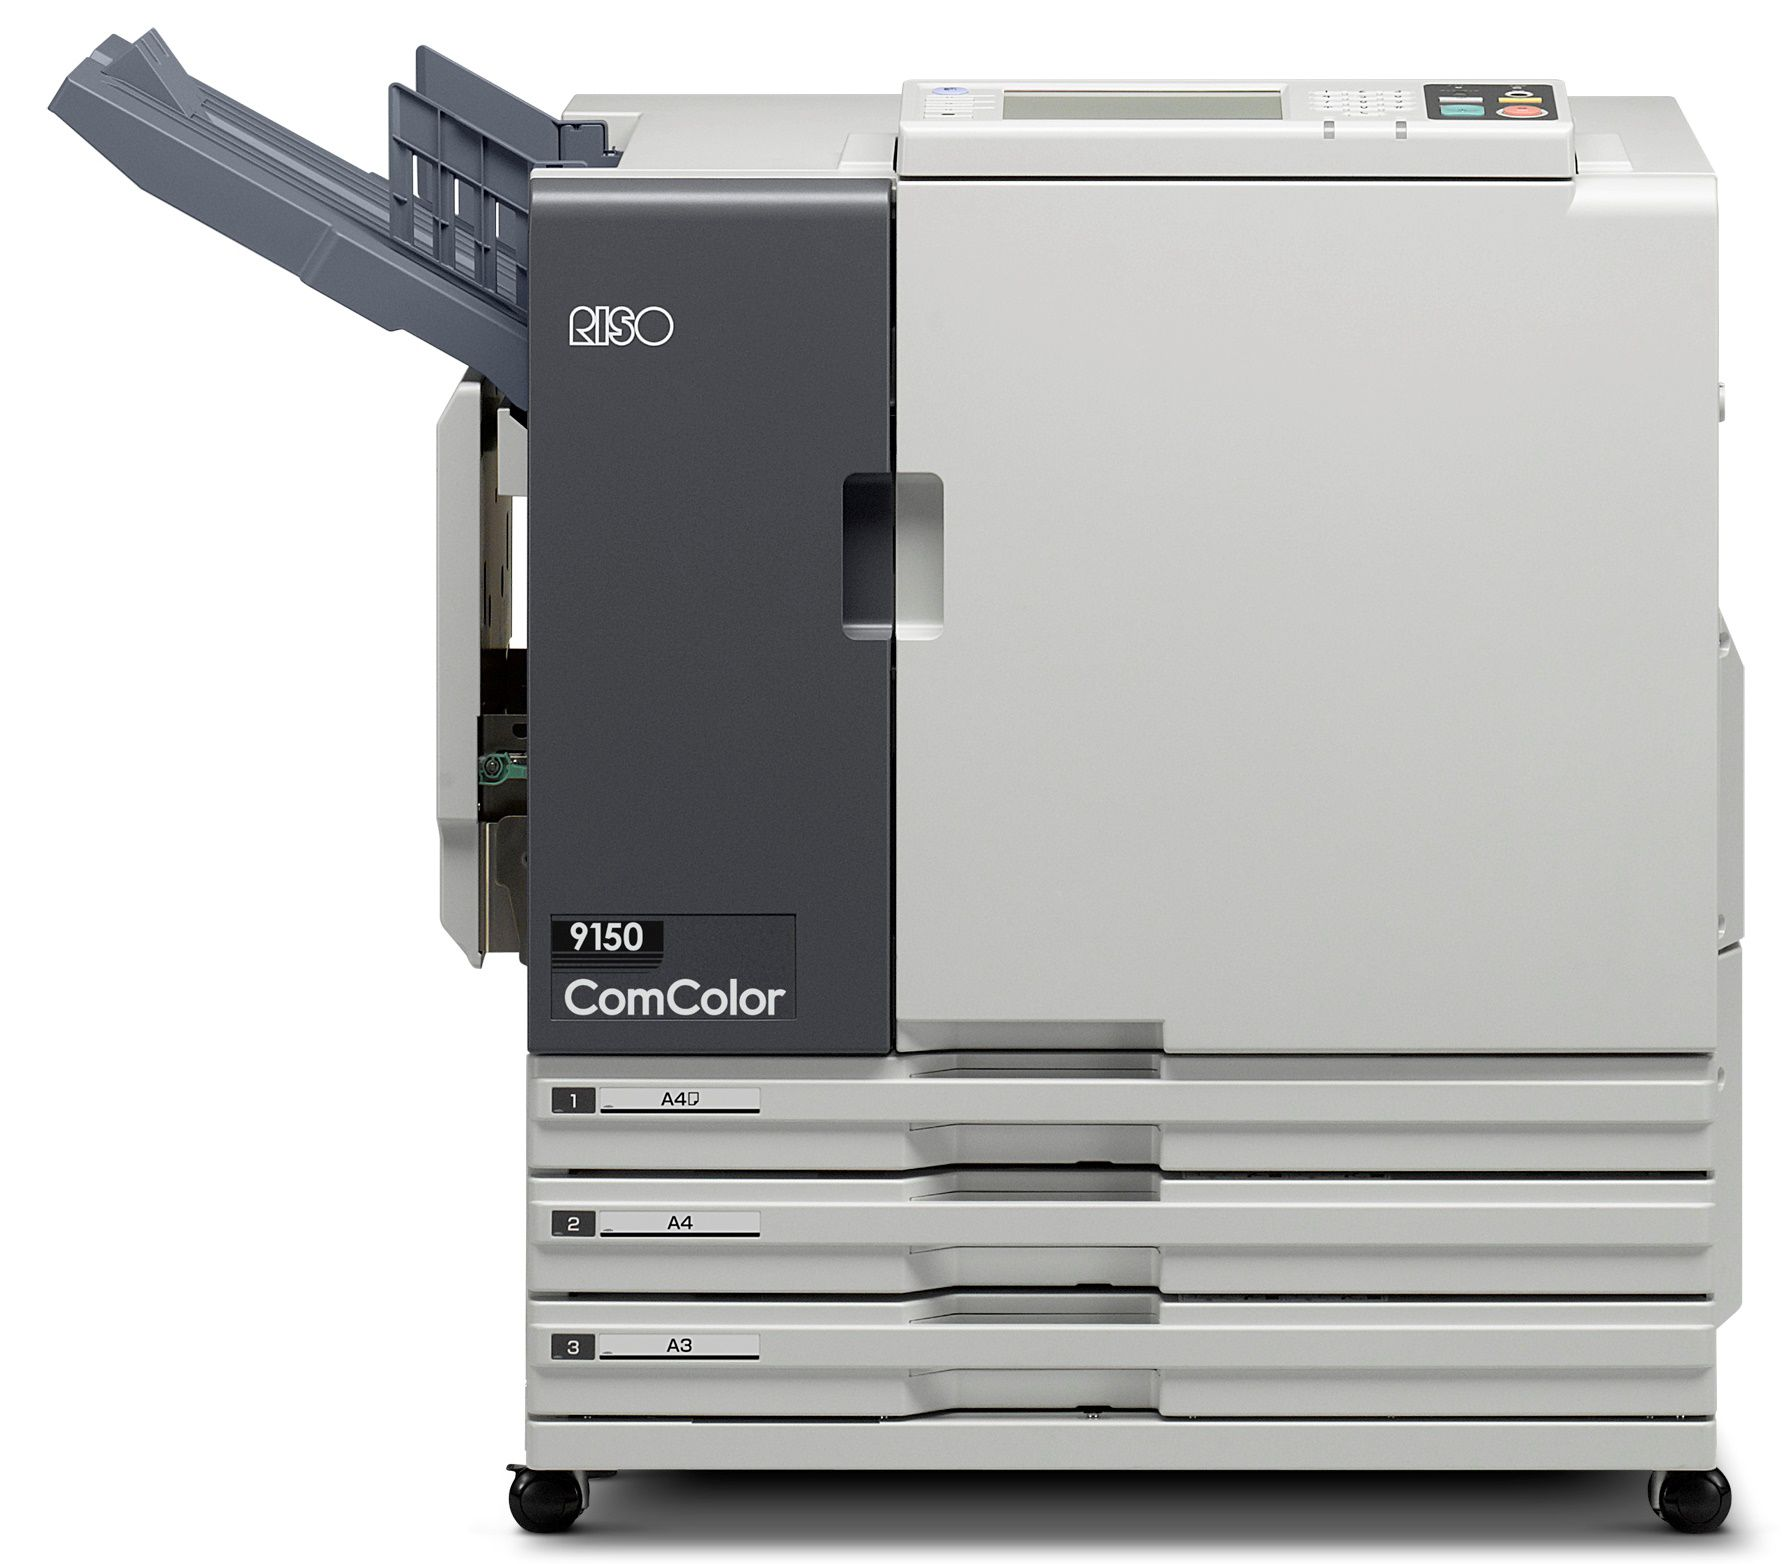 Comcolor 9150 А3+